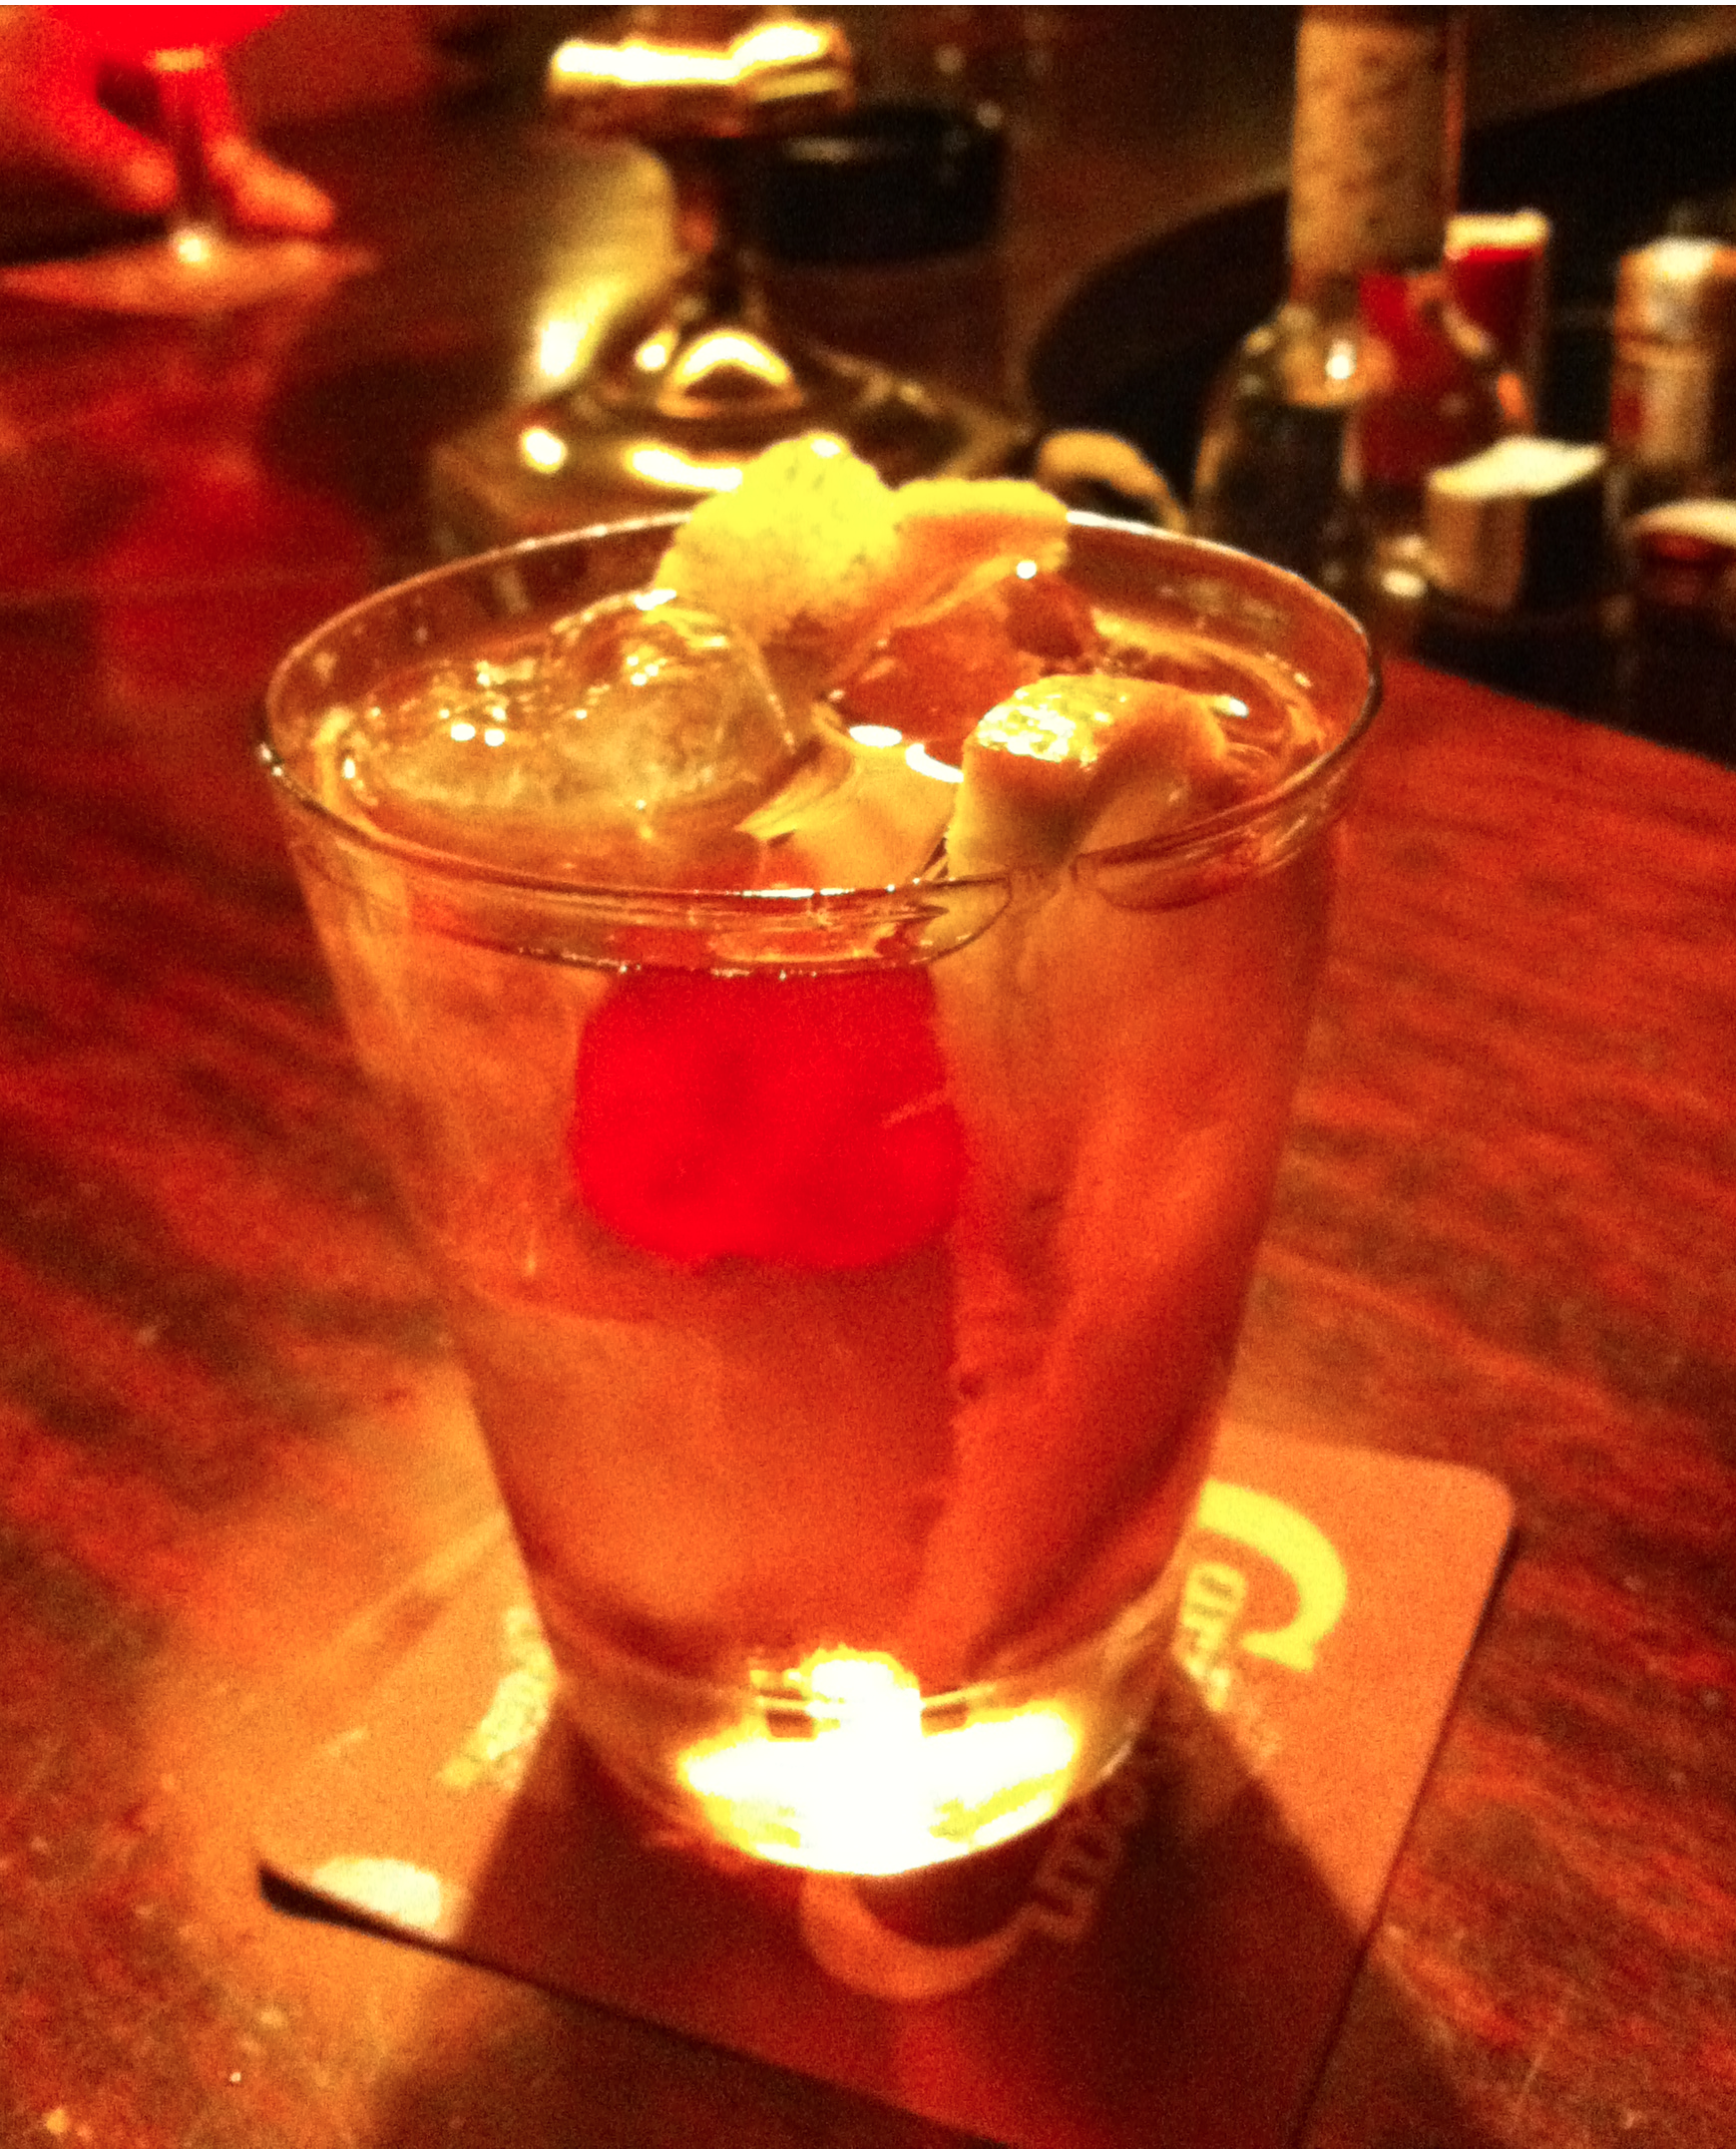 File:Oldfashioned-cocktail.png - Wikipedia, the free encyclopedia